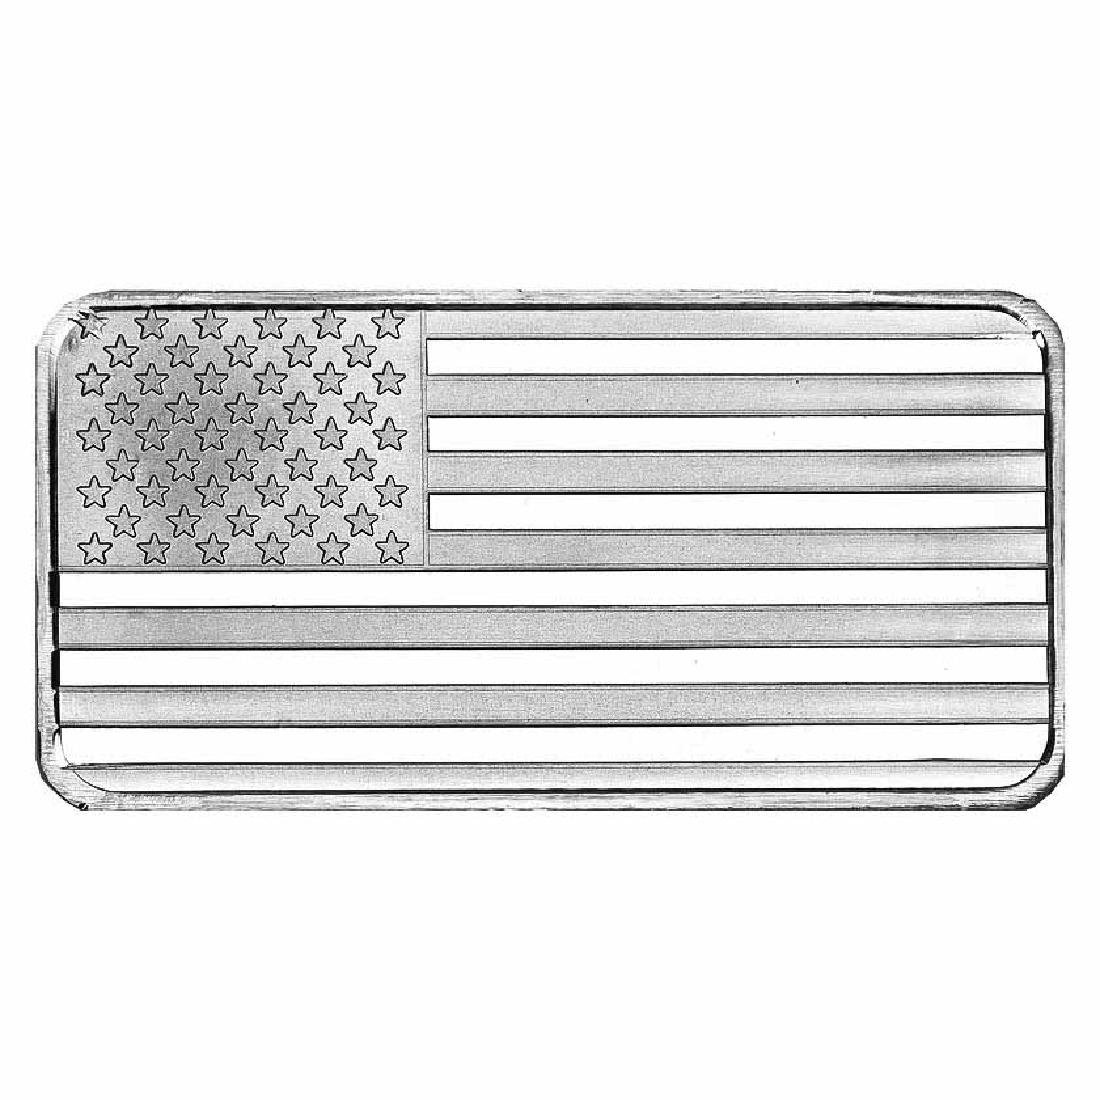 SilverTowne 10 oz Silver Bar - Flag Design